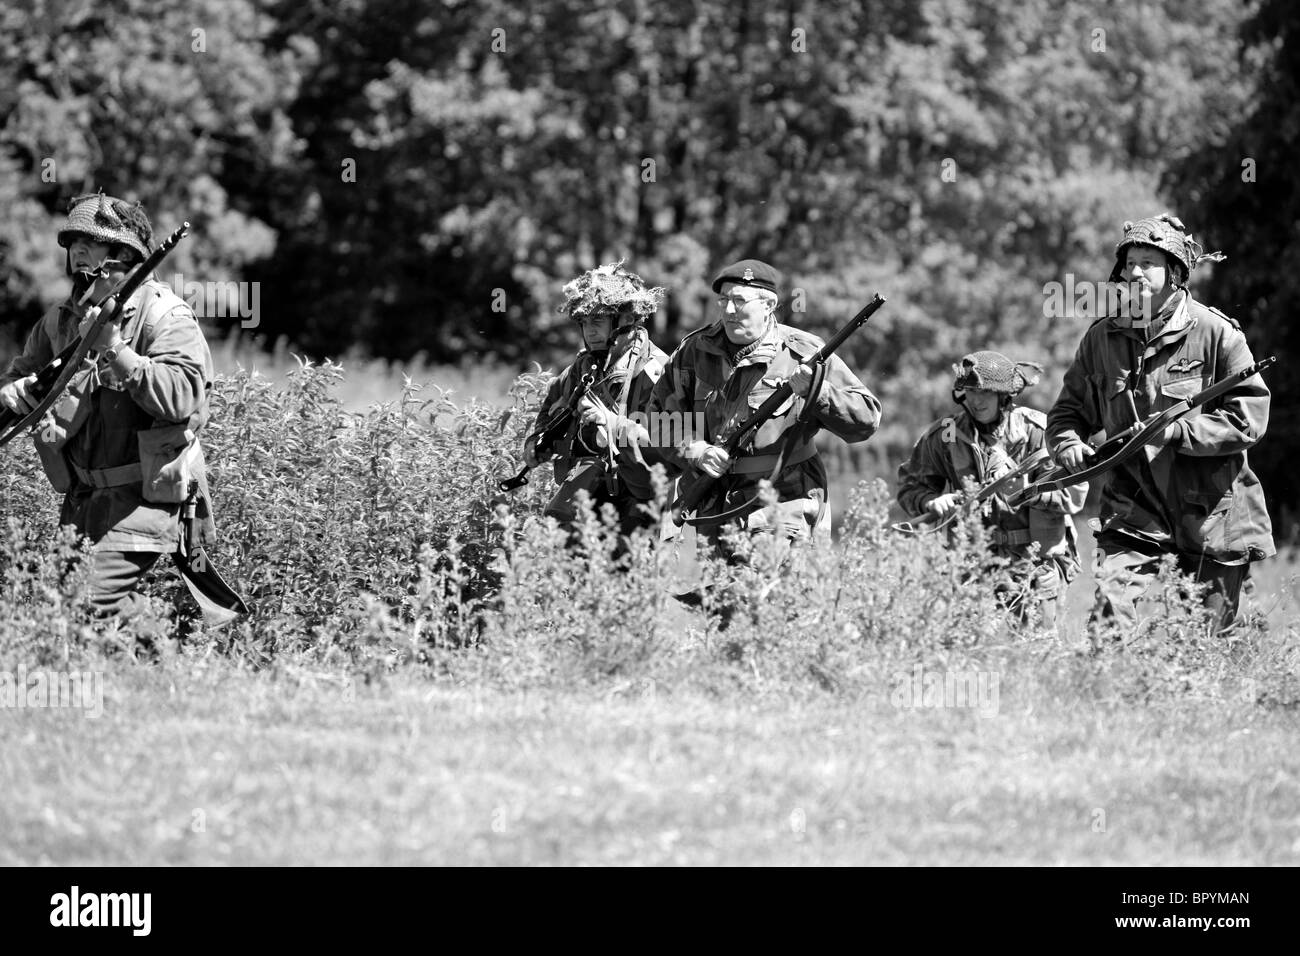 Soldiers of the British Army Airborne Division in Normandy 1944 - Stock Image